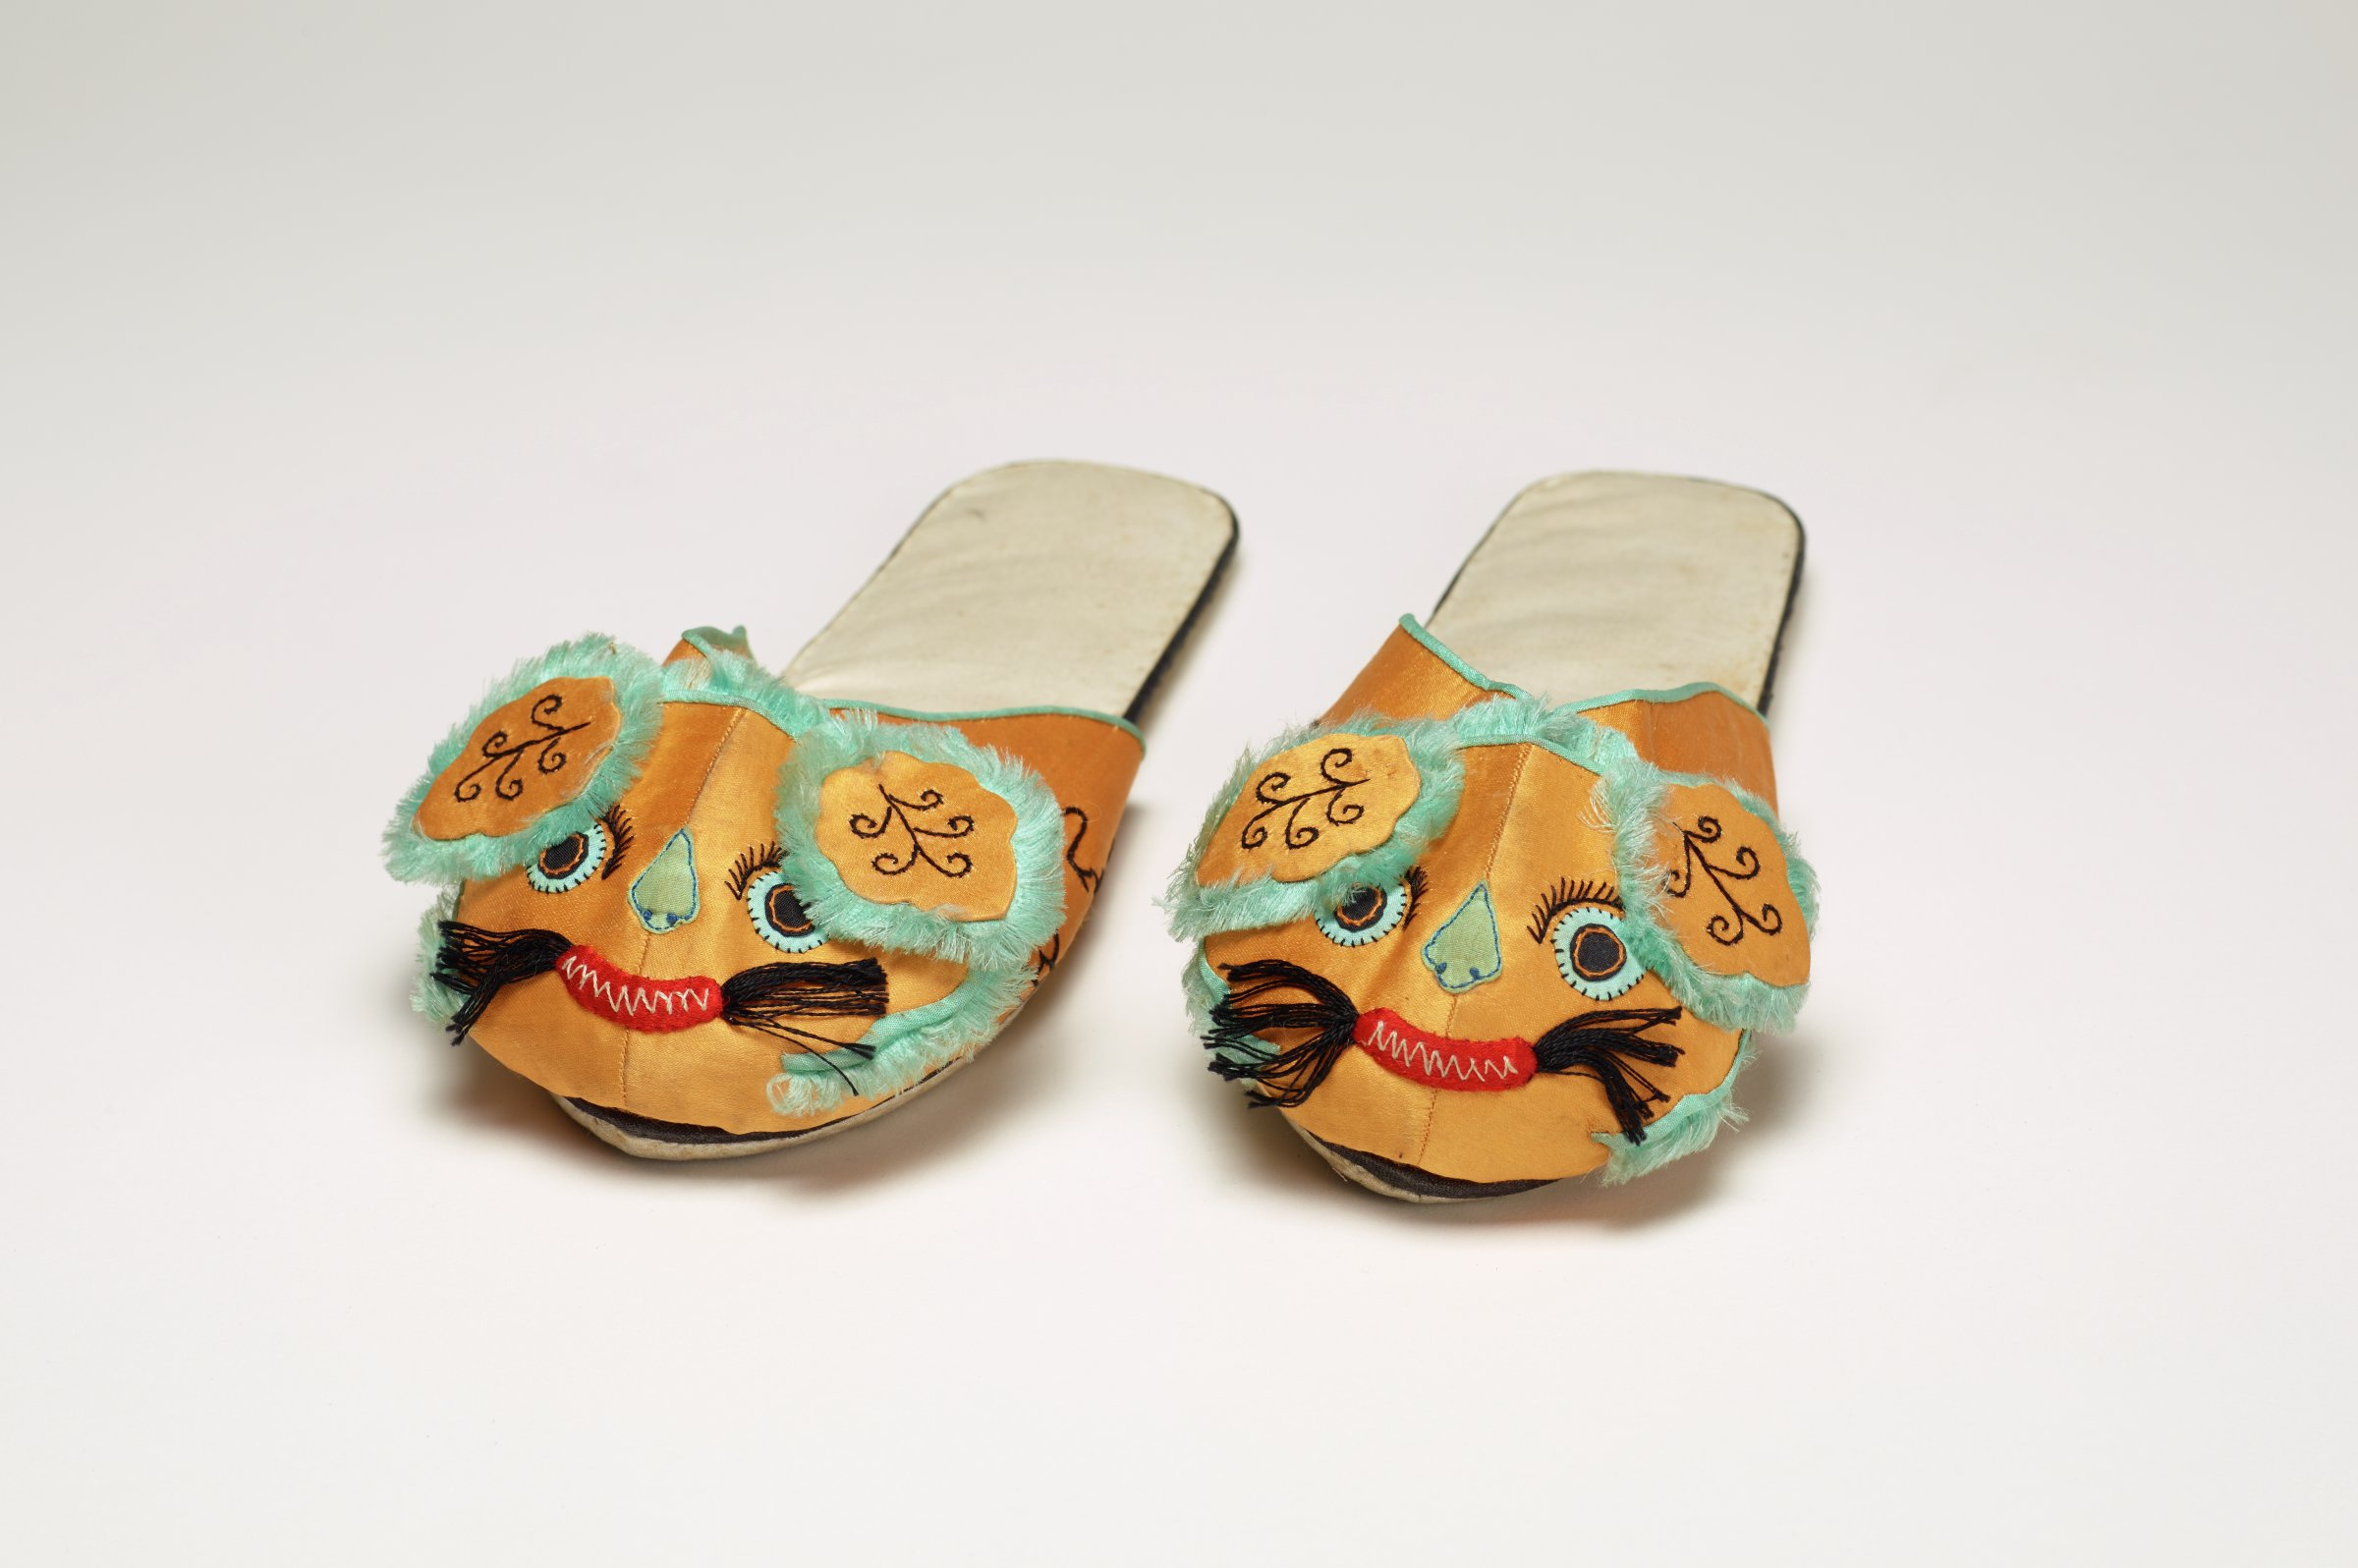 Yellow silk slip-on slippers with lion faces done in embroidery and appliqué for the toes.